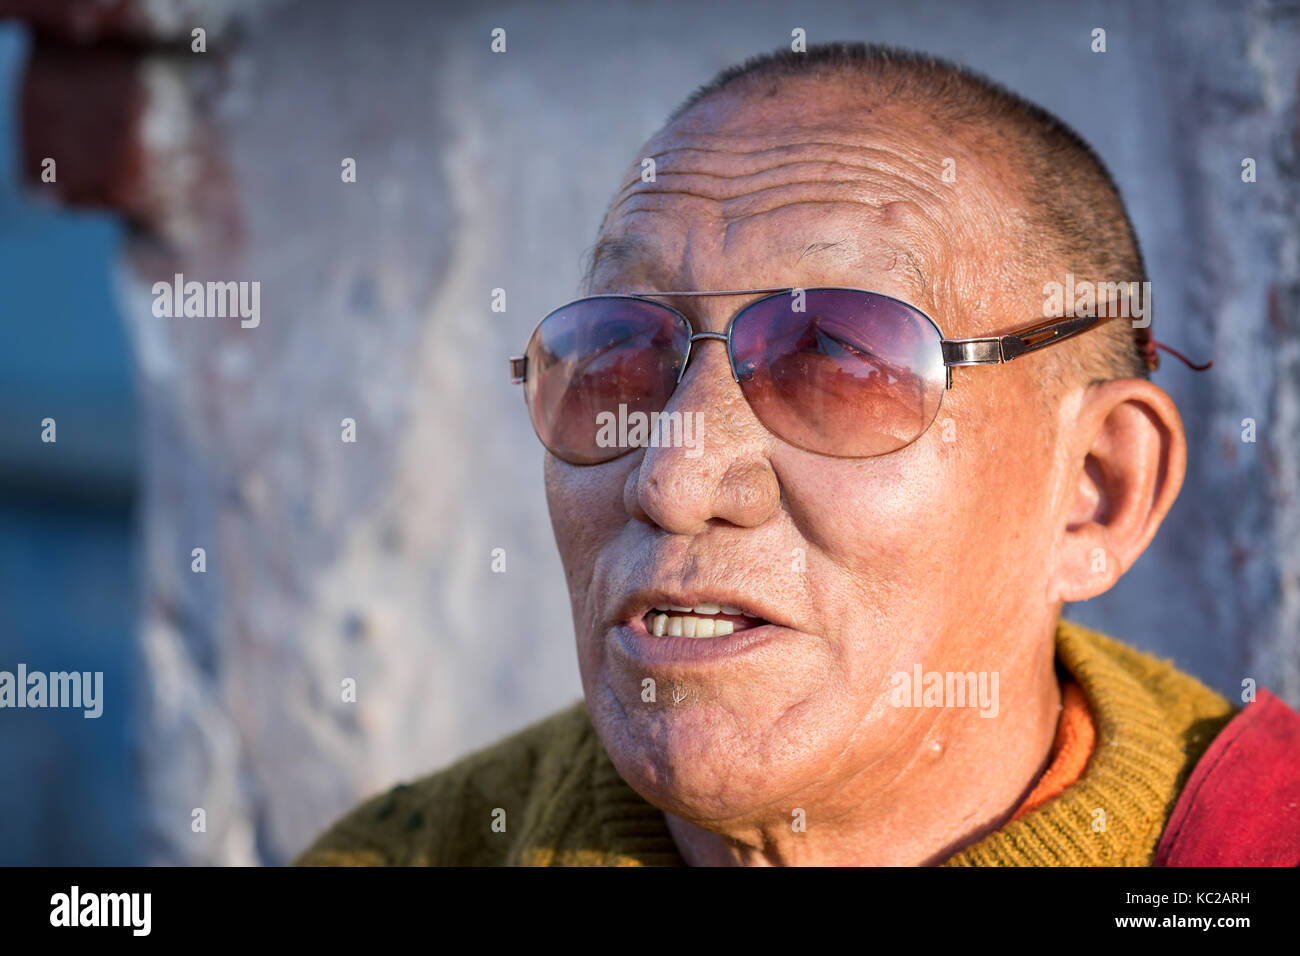 Buddhist monk with sunglasses which reflects Boudhanath stupa, Boudnath, Kathmandu, Nepal, South Asia - Stock Image